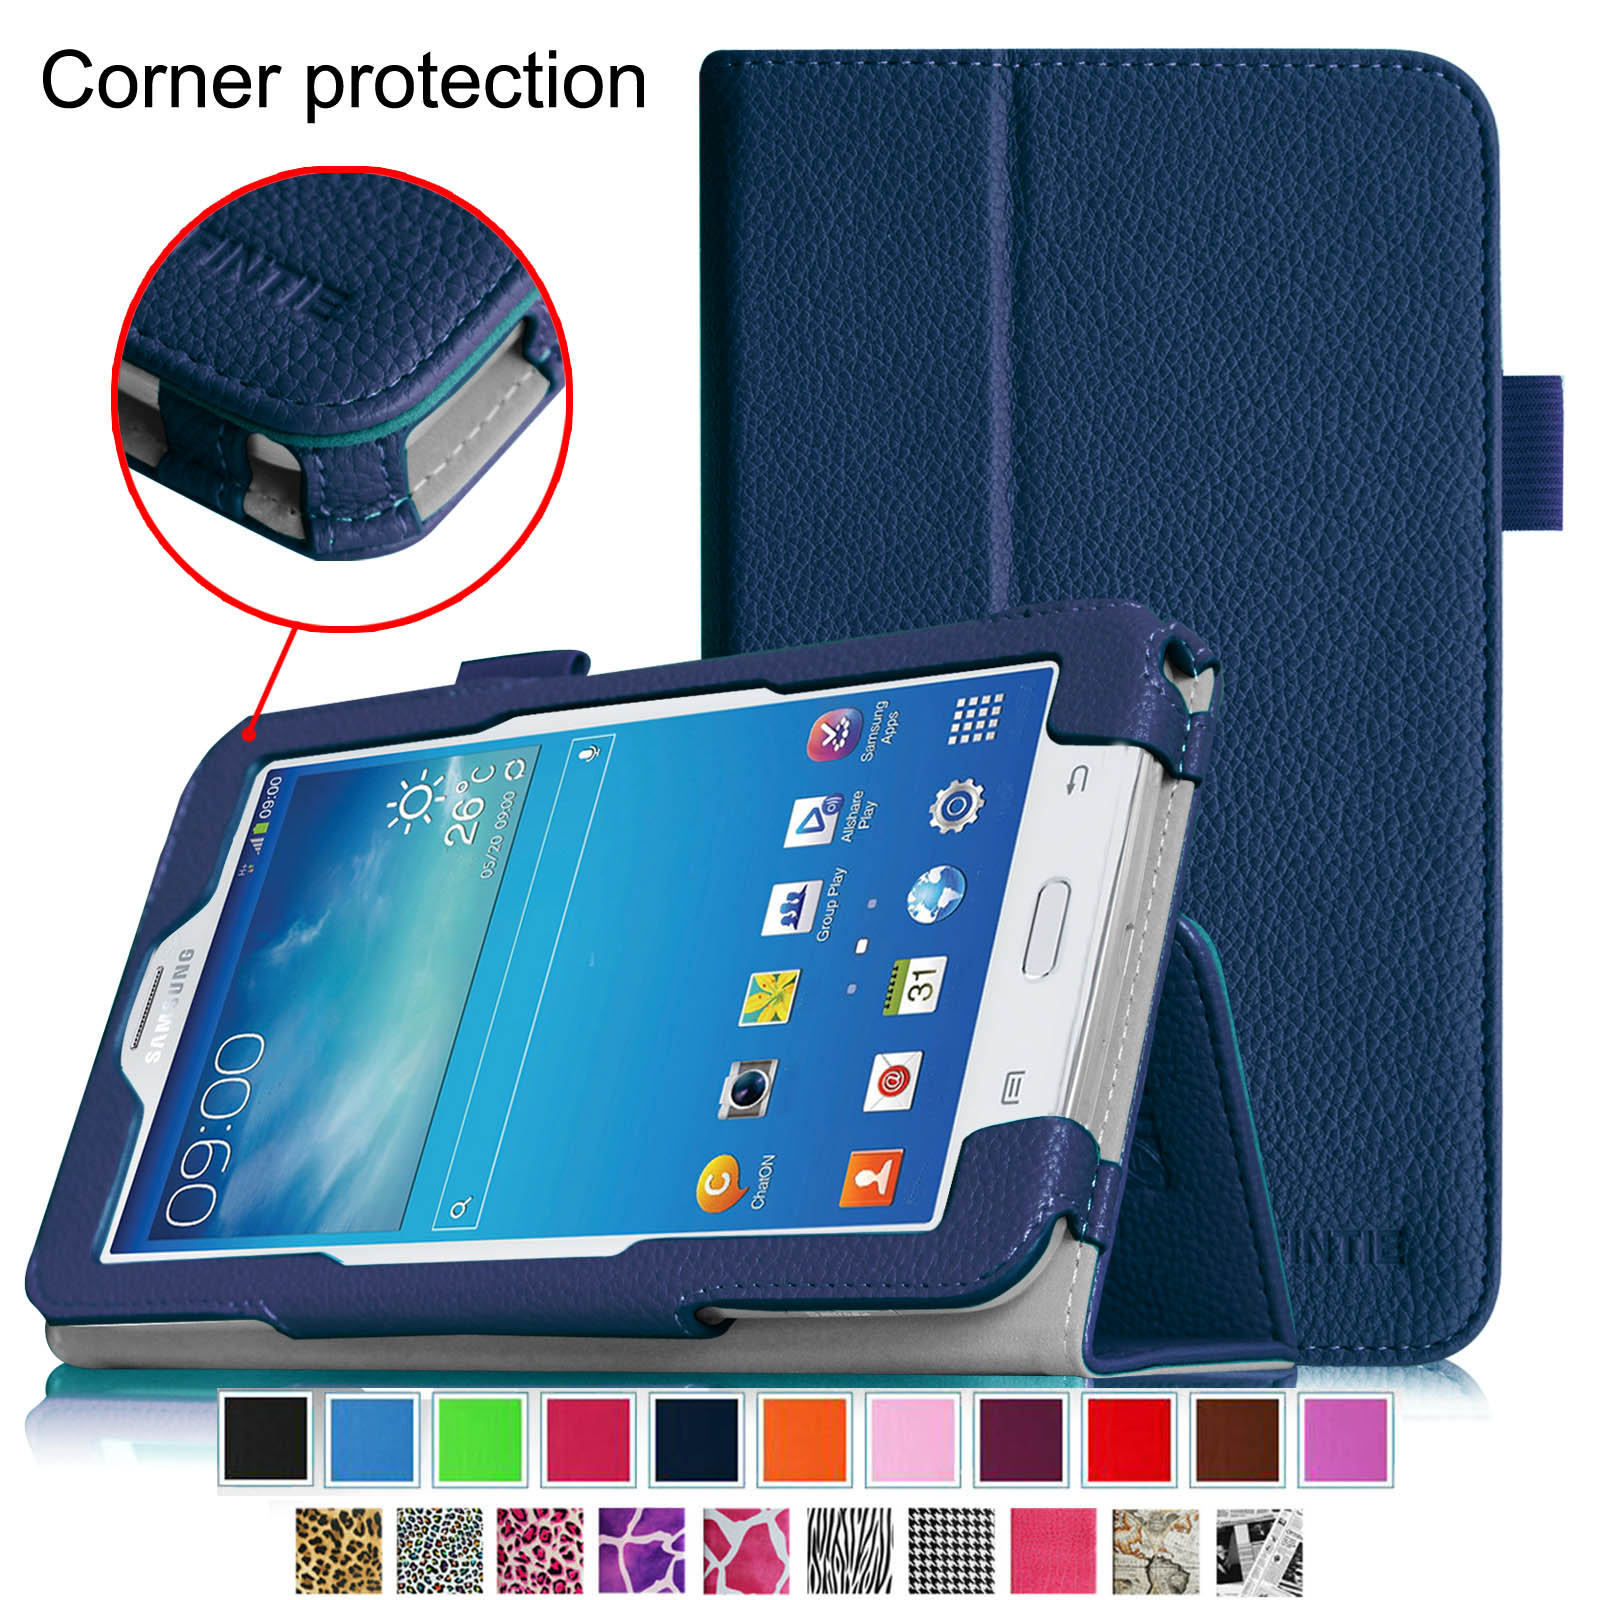 Fintie Folio Case for Samsung Galaxy Tab E Lite 7.0 SM-T113 / Tab 3 Lite 7.0 SM-T110 SM-T111 Tablet Stand Cover, Navy